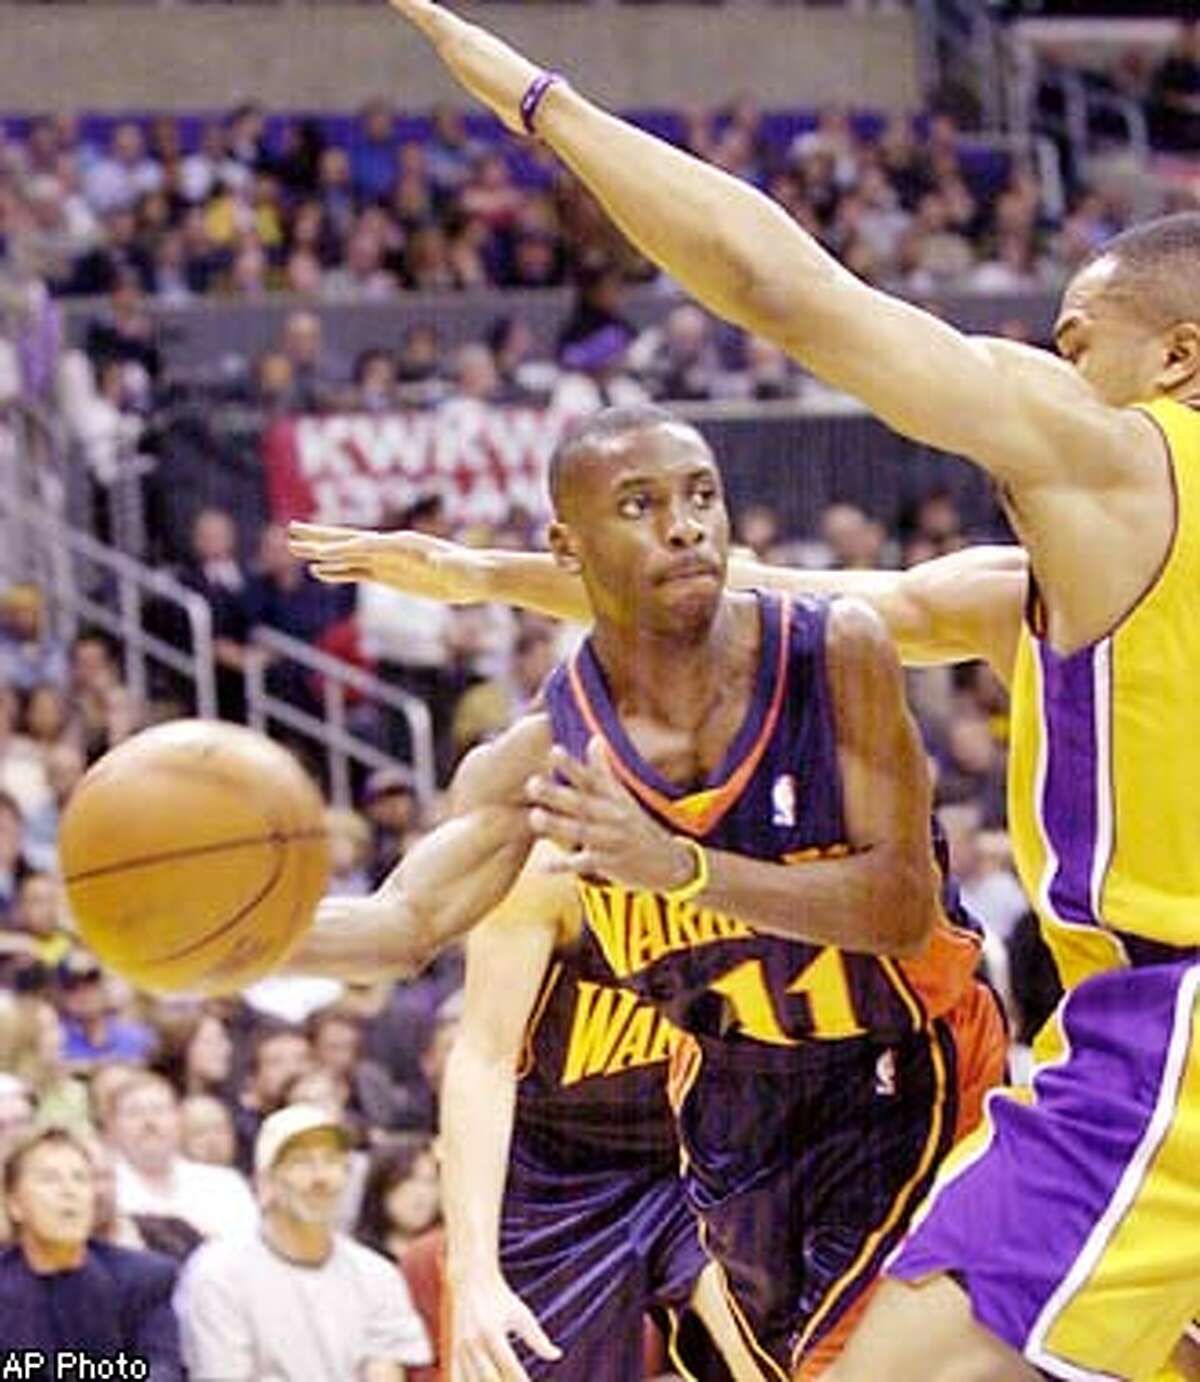 Los Angeles Lakers' Derek Fisher, right, tries to trap Golden State Warriors' Earl Boykins during the second quarter Wednesday, Jan. 22, 2003, in Los Angeles. (AP Photo)